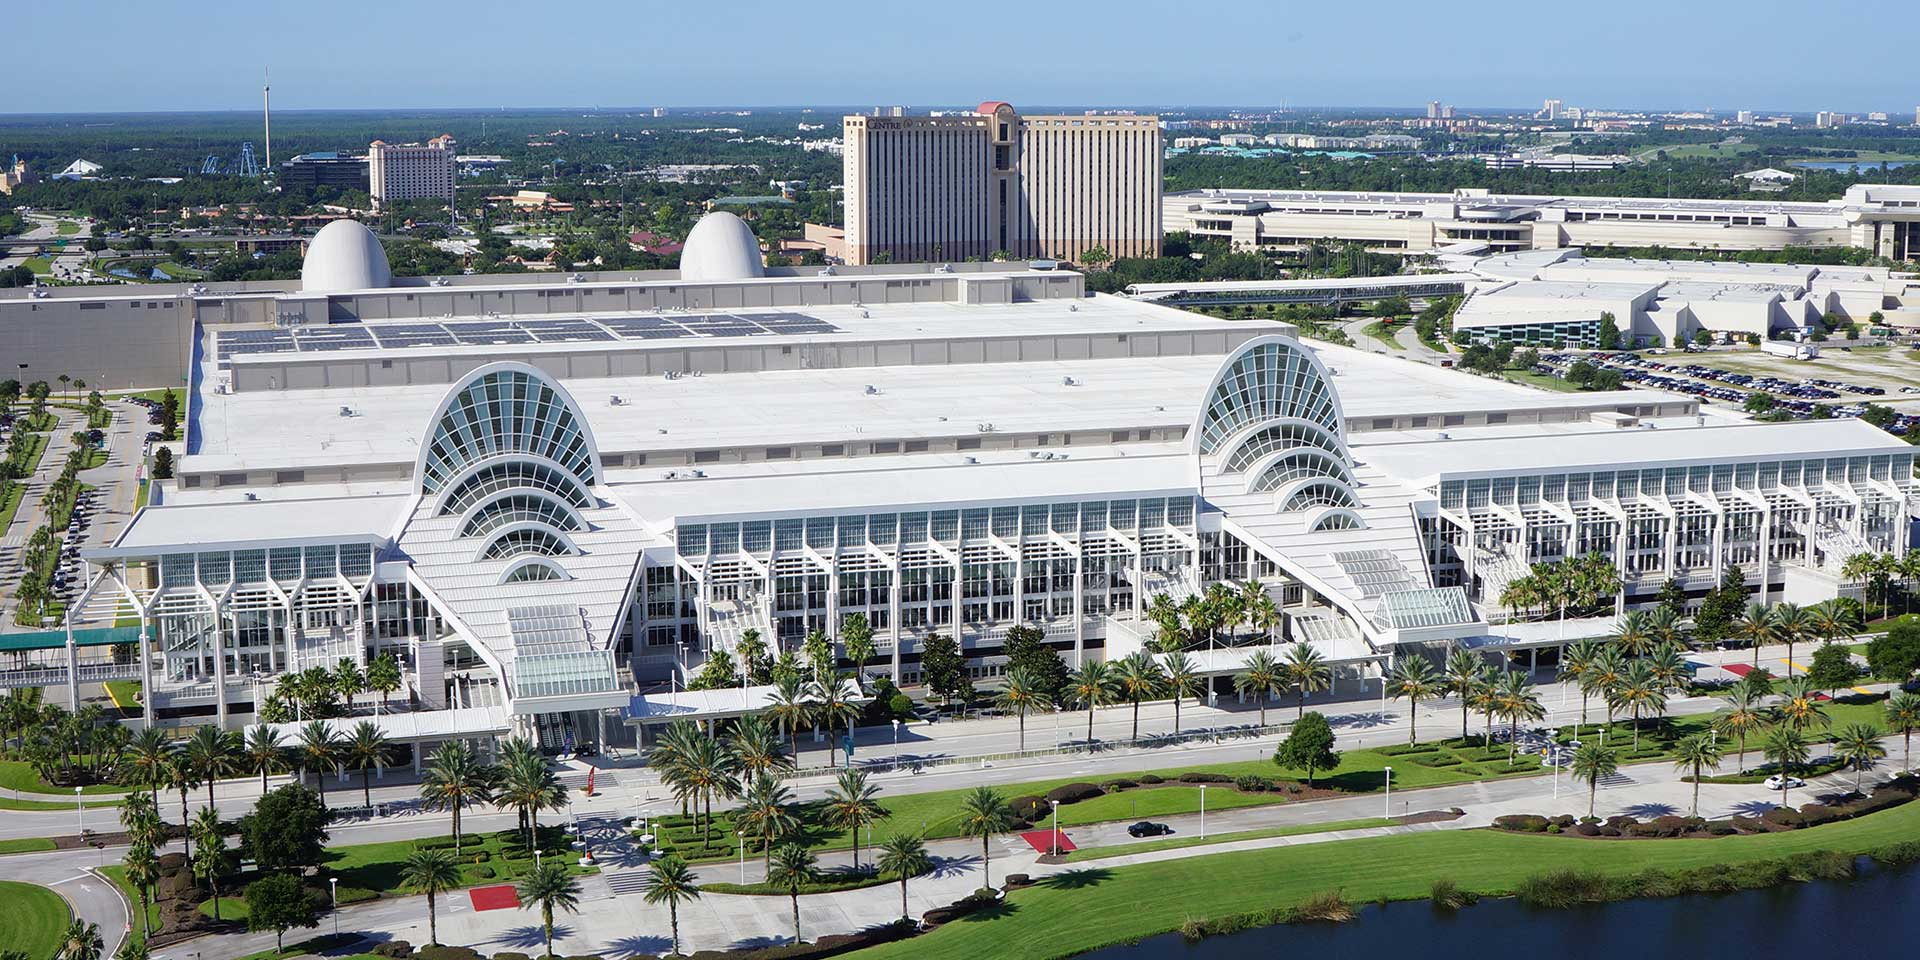 Aerial view or Orange County Convention Center